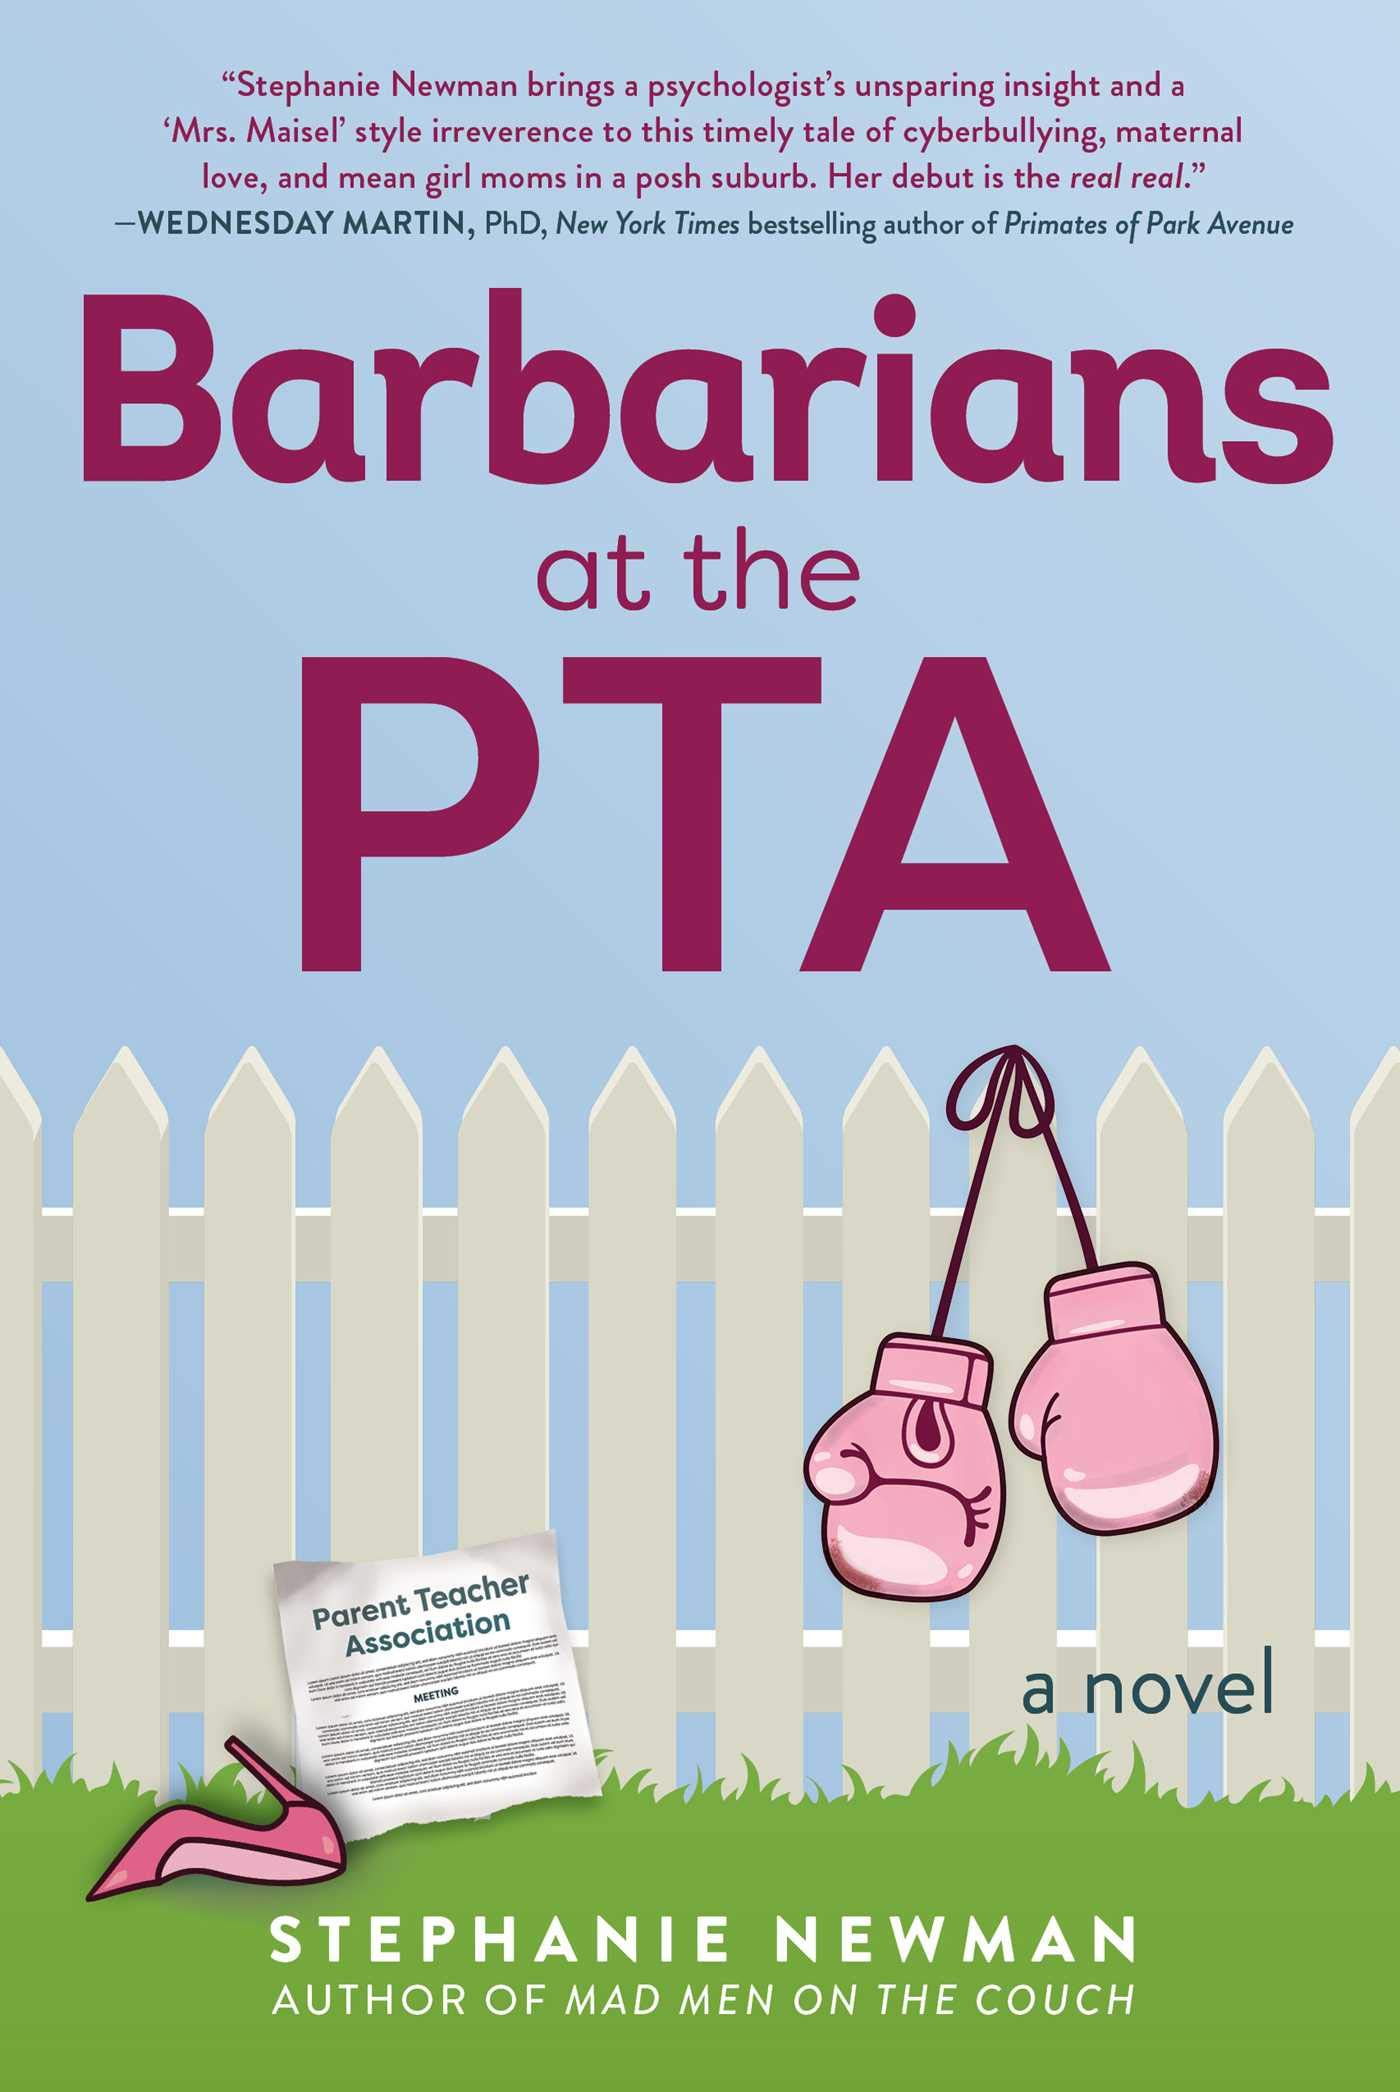 Barbarians at the PTA by Stephanie Newman